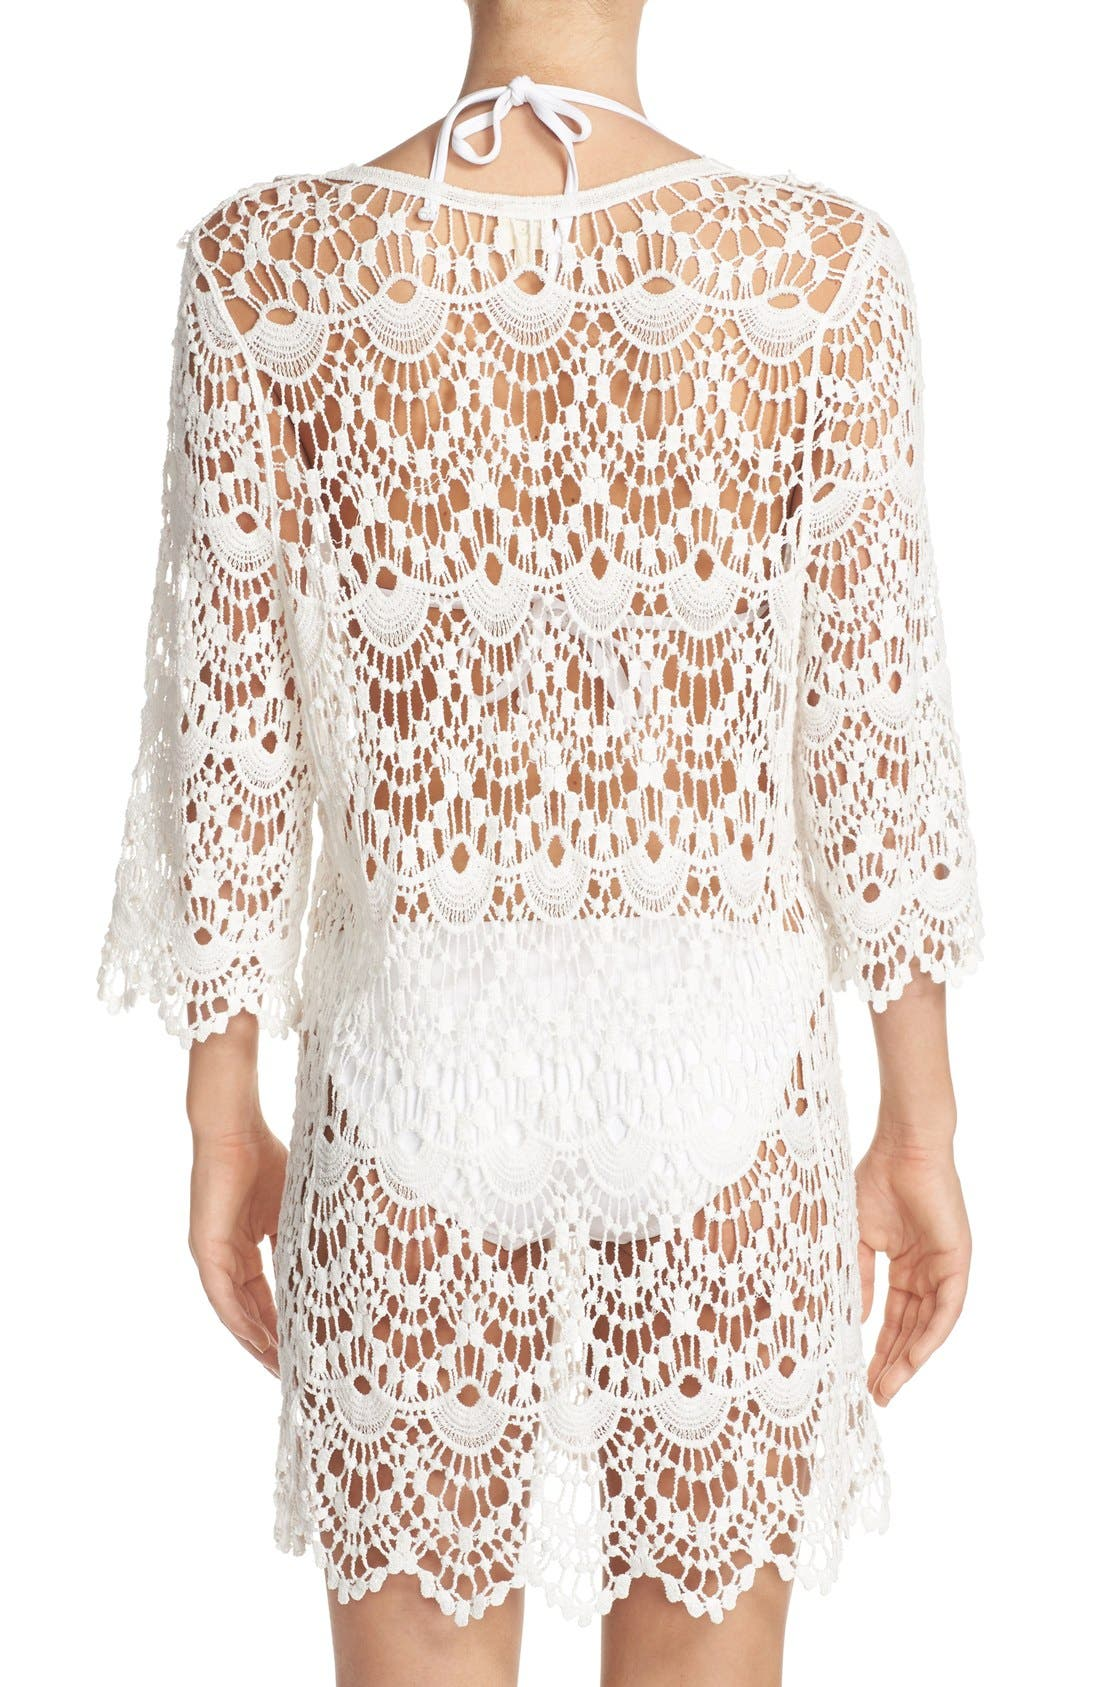 Crochet Cover-Up Tunic,                             Alternate thumbnail 2, color,                             White